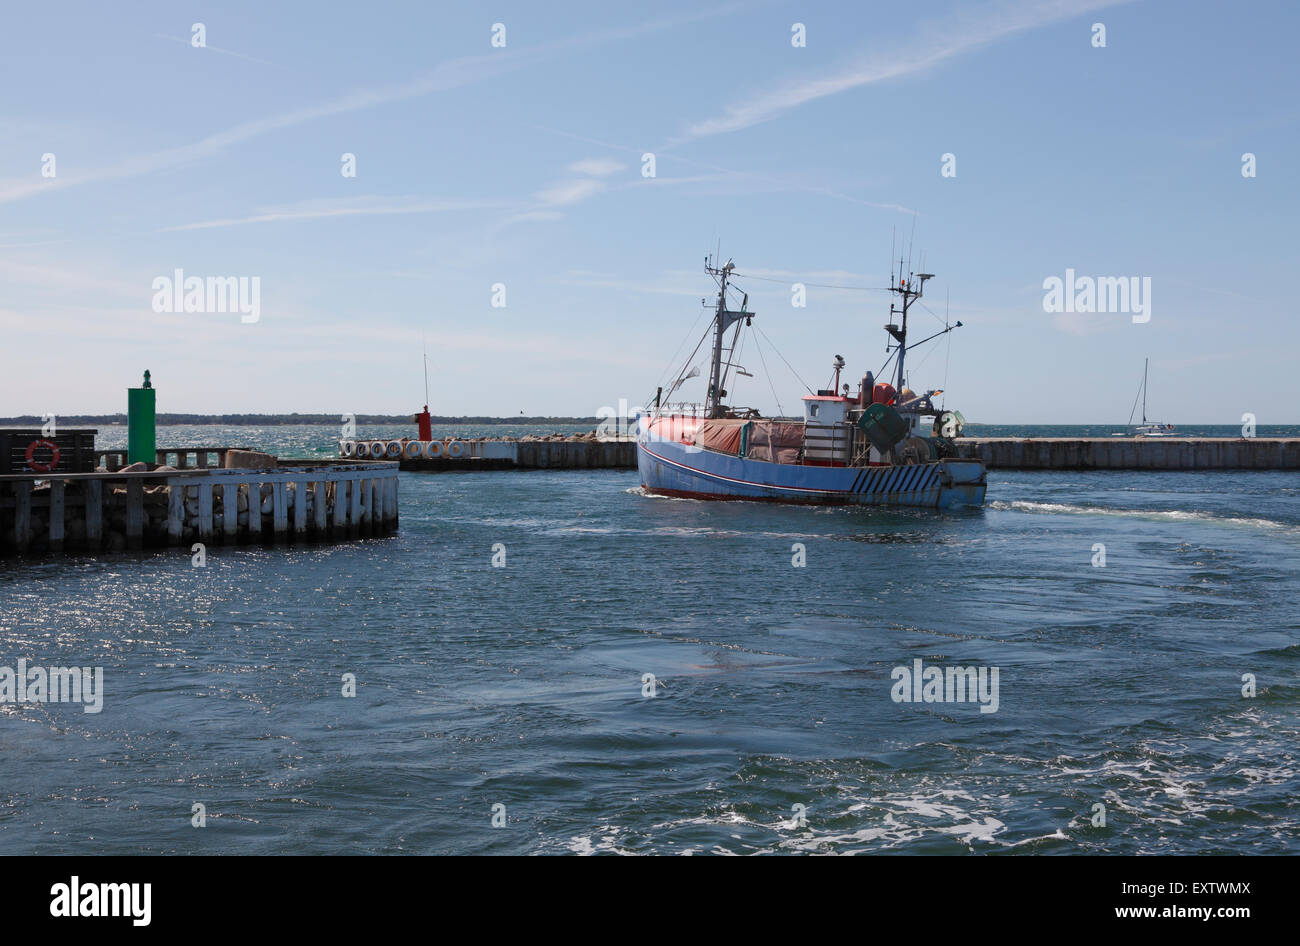 Fishing vessel leaving Hundested Harbour, an old fishing port in North Zealand in the southern part of the Kattegat - Stock Image